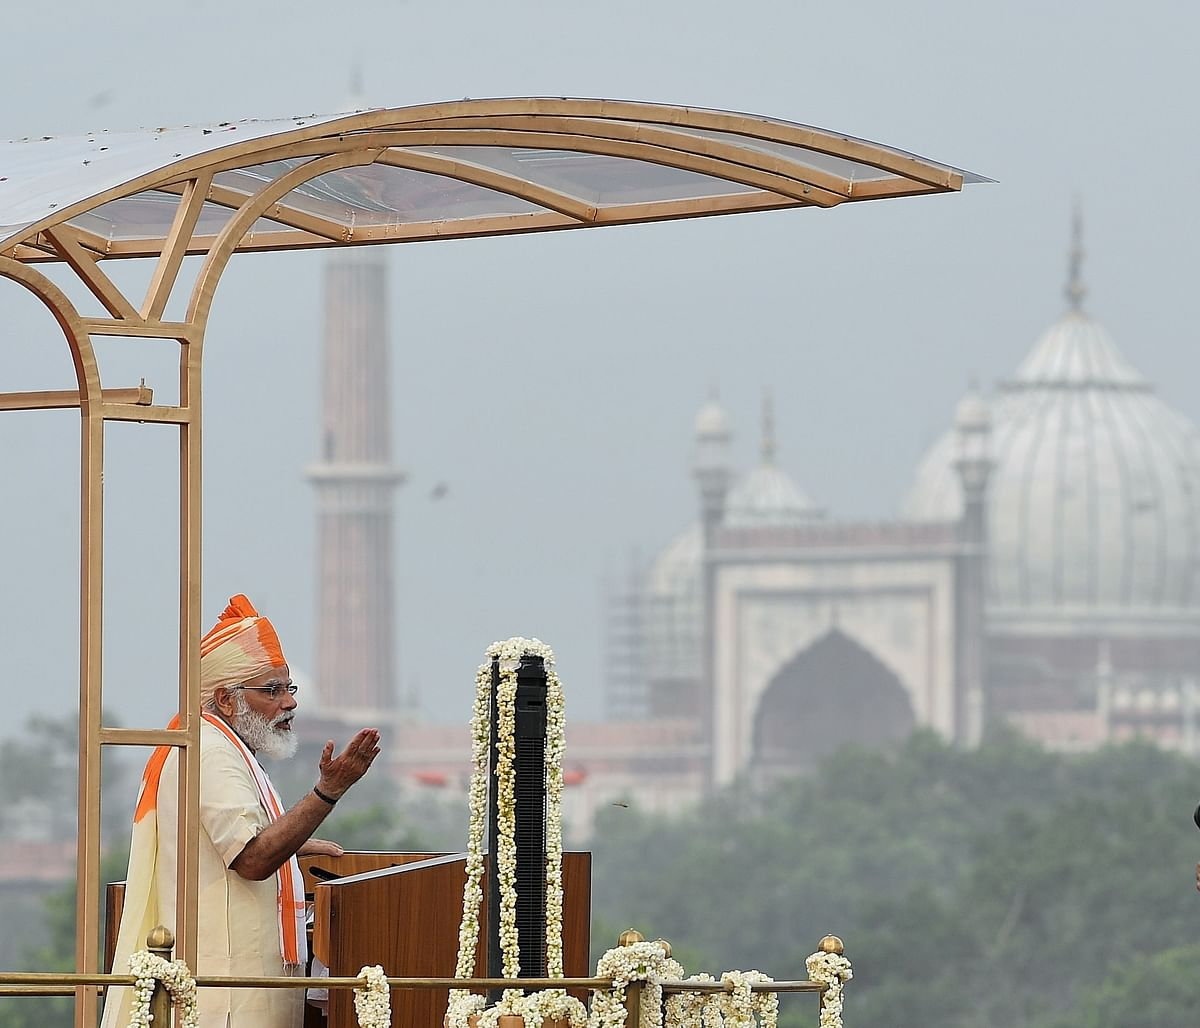 Prime Minister Narendra Modi addressing the nation from the ramparts of the Red Fort, in New Delhi on August 15, 2020.